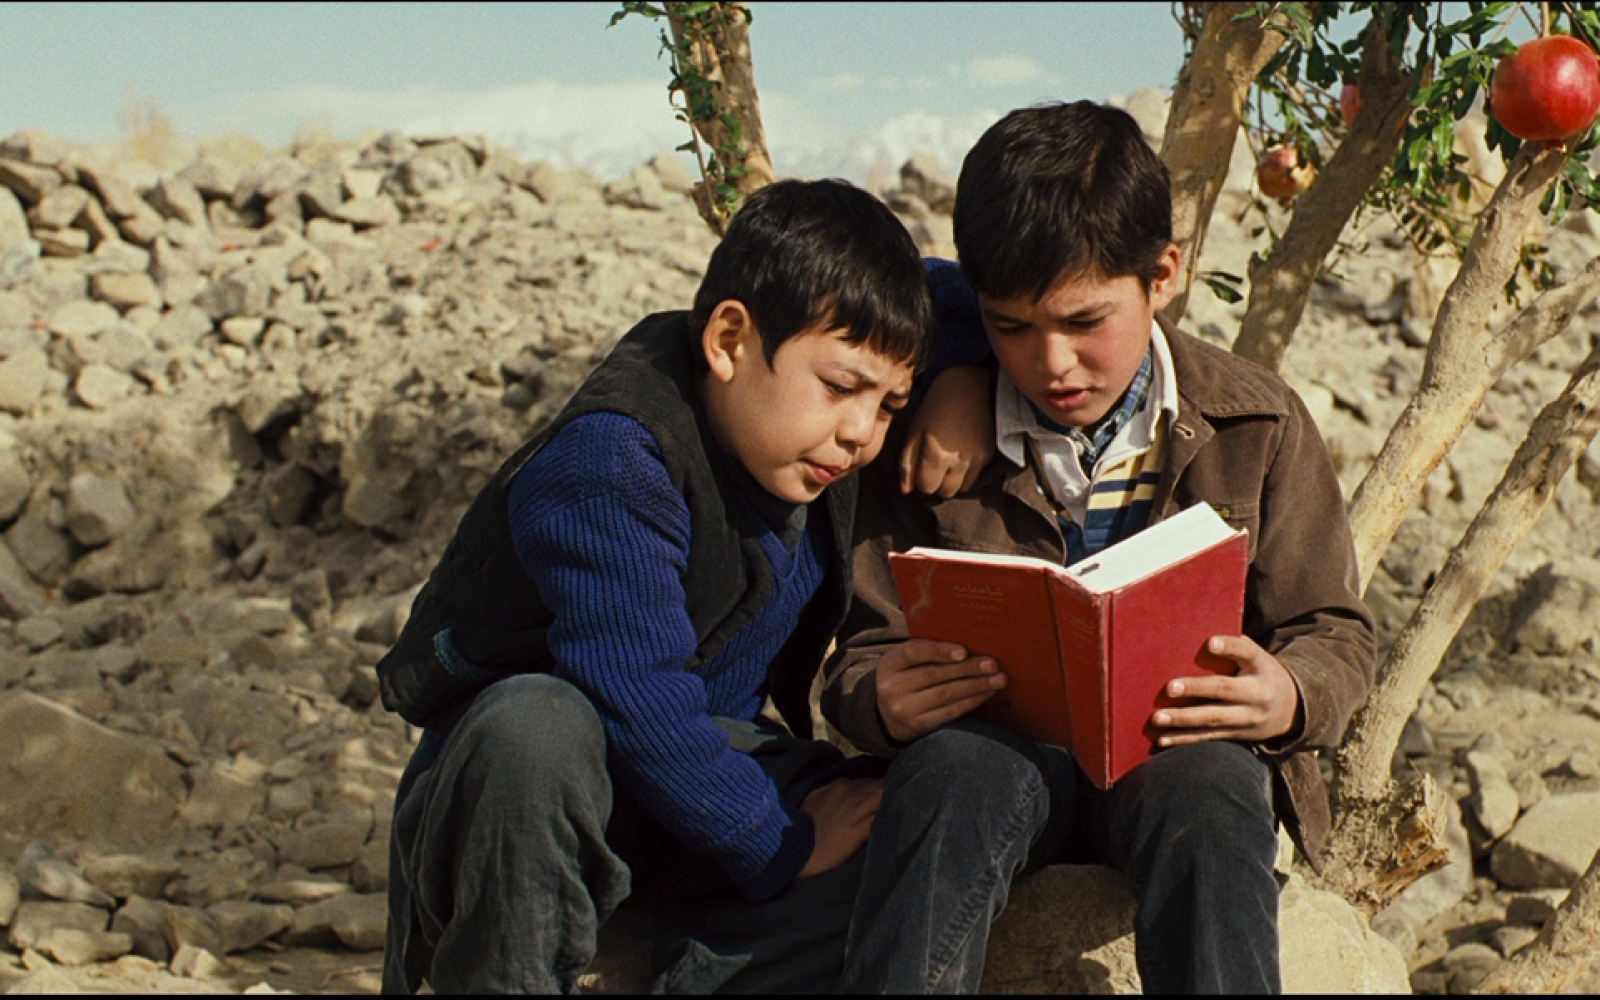 15 Of The Most Beautiful Quotes From 'The Kite Runner'